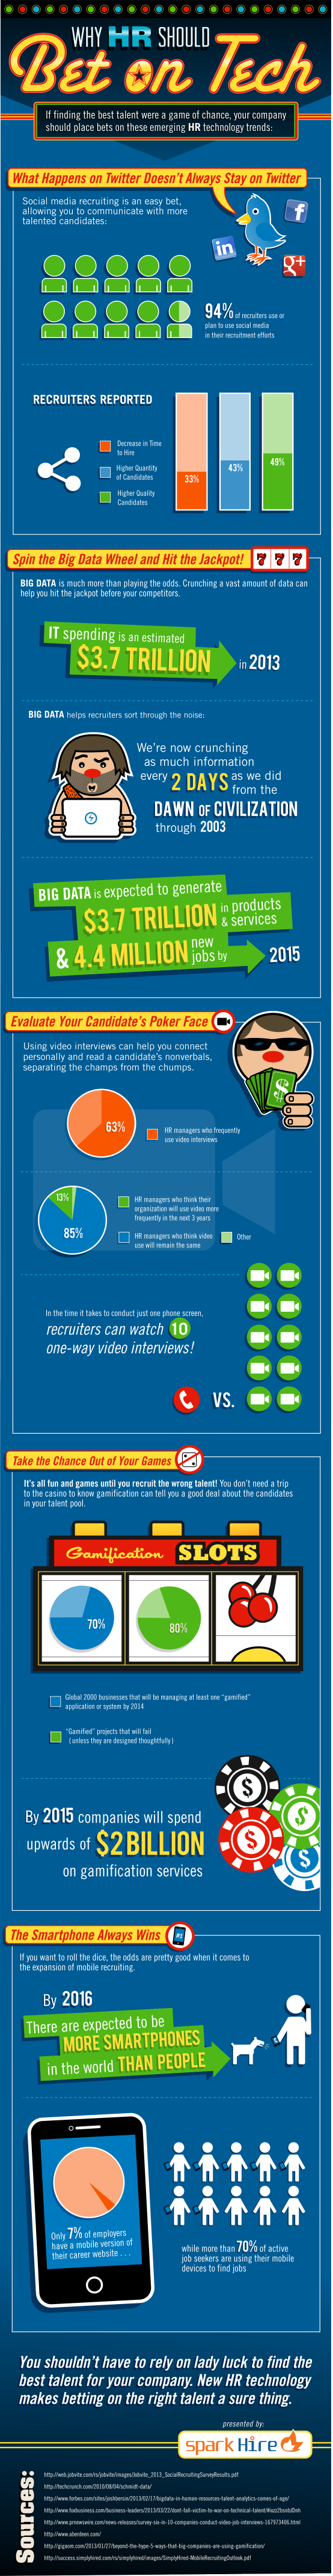 infographie-recrutement-technologies